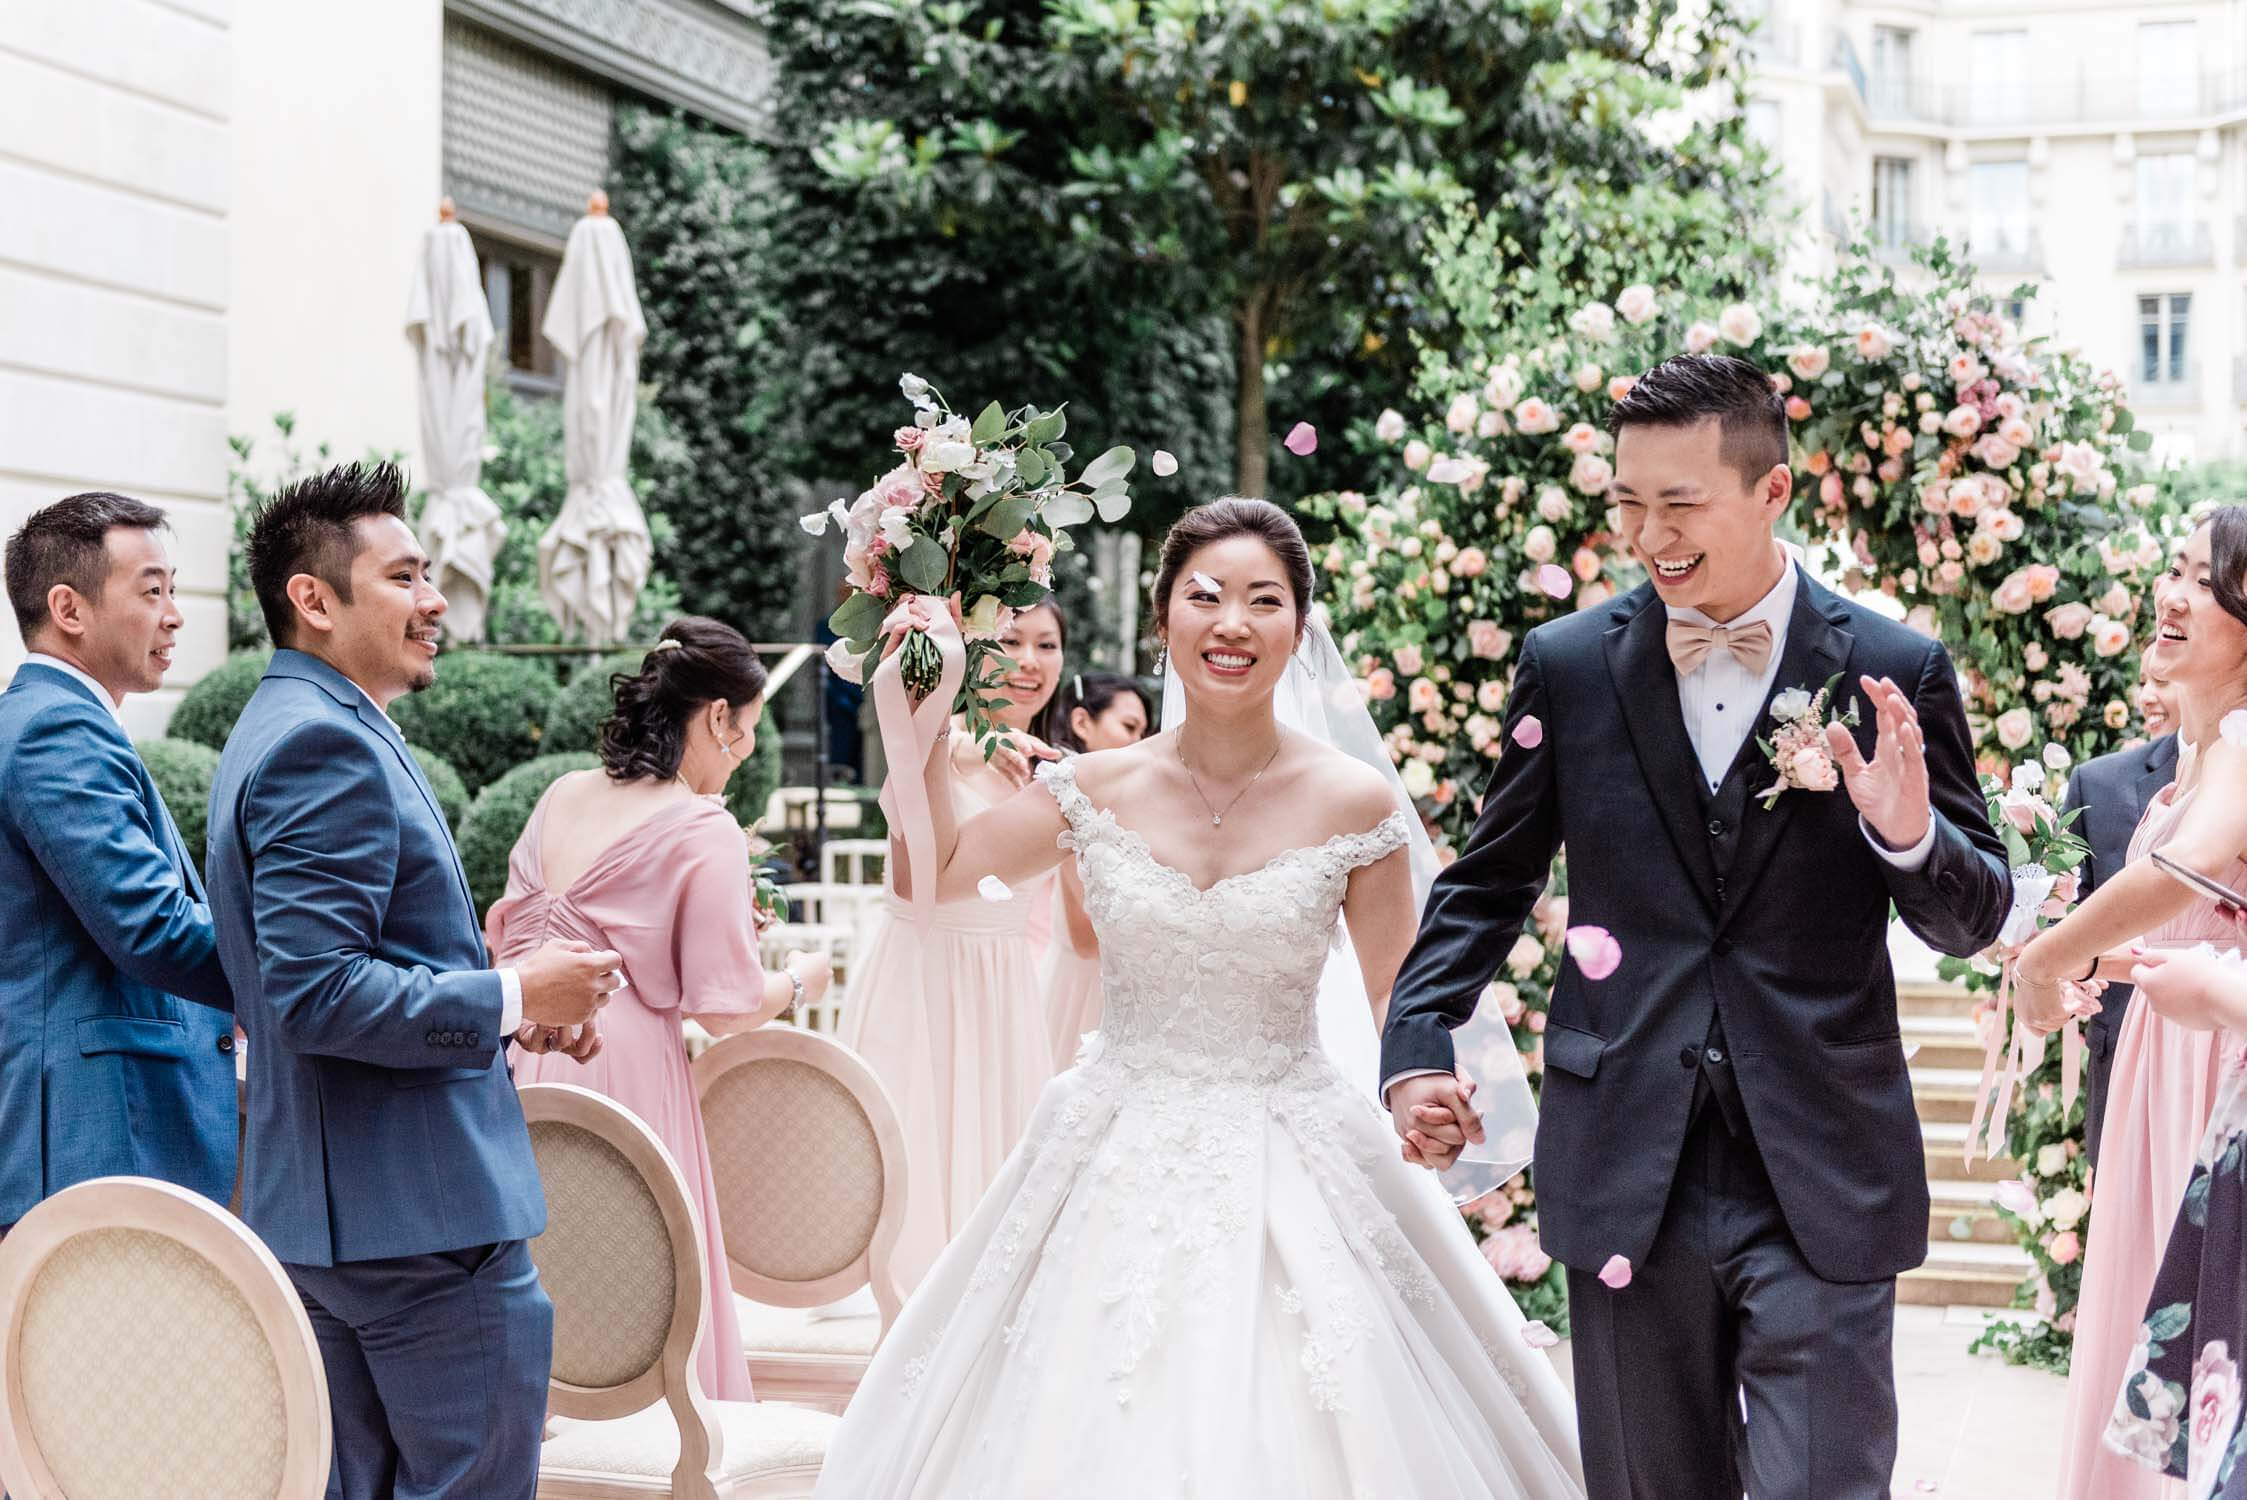 A bride and groom walk out of their elopement ceremony in Paris, being showered by rose petals